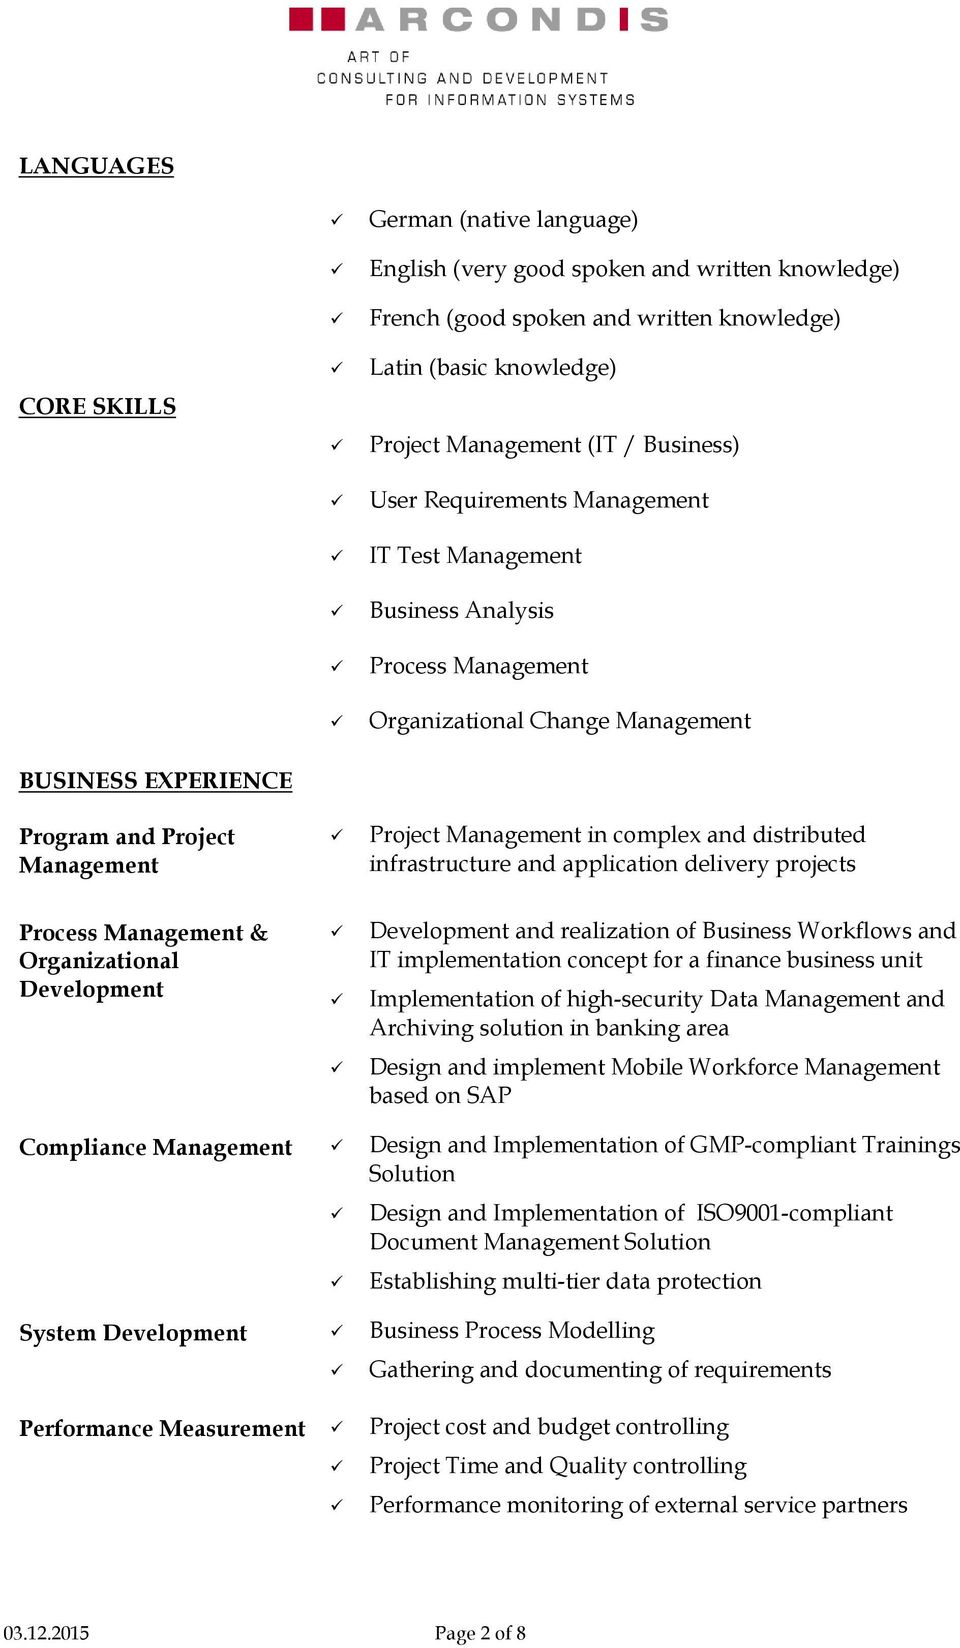 Process & Organizational Development Development and realization of Business Workflows and IT implementation concept for a finance business unit Implementation of high-security Data and Archiving